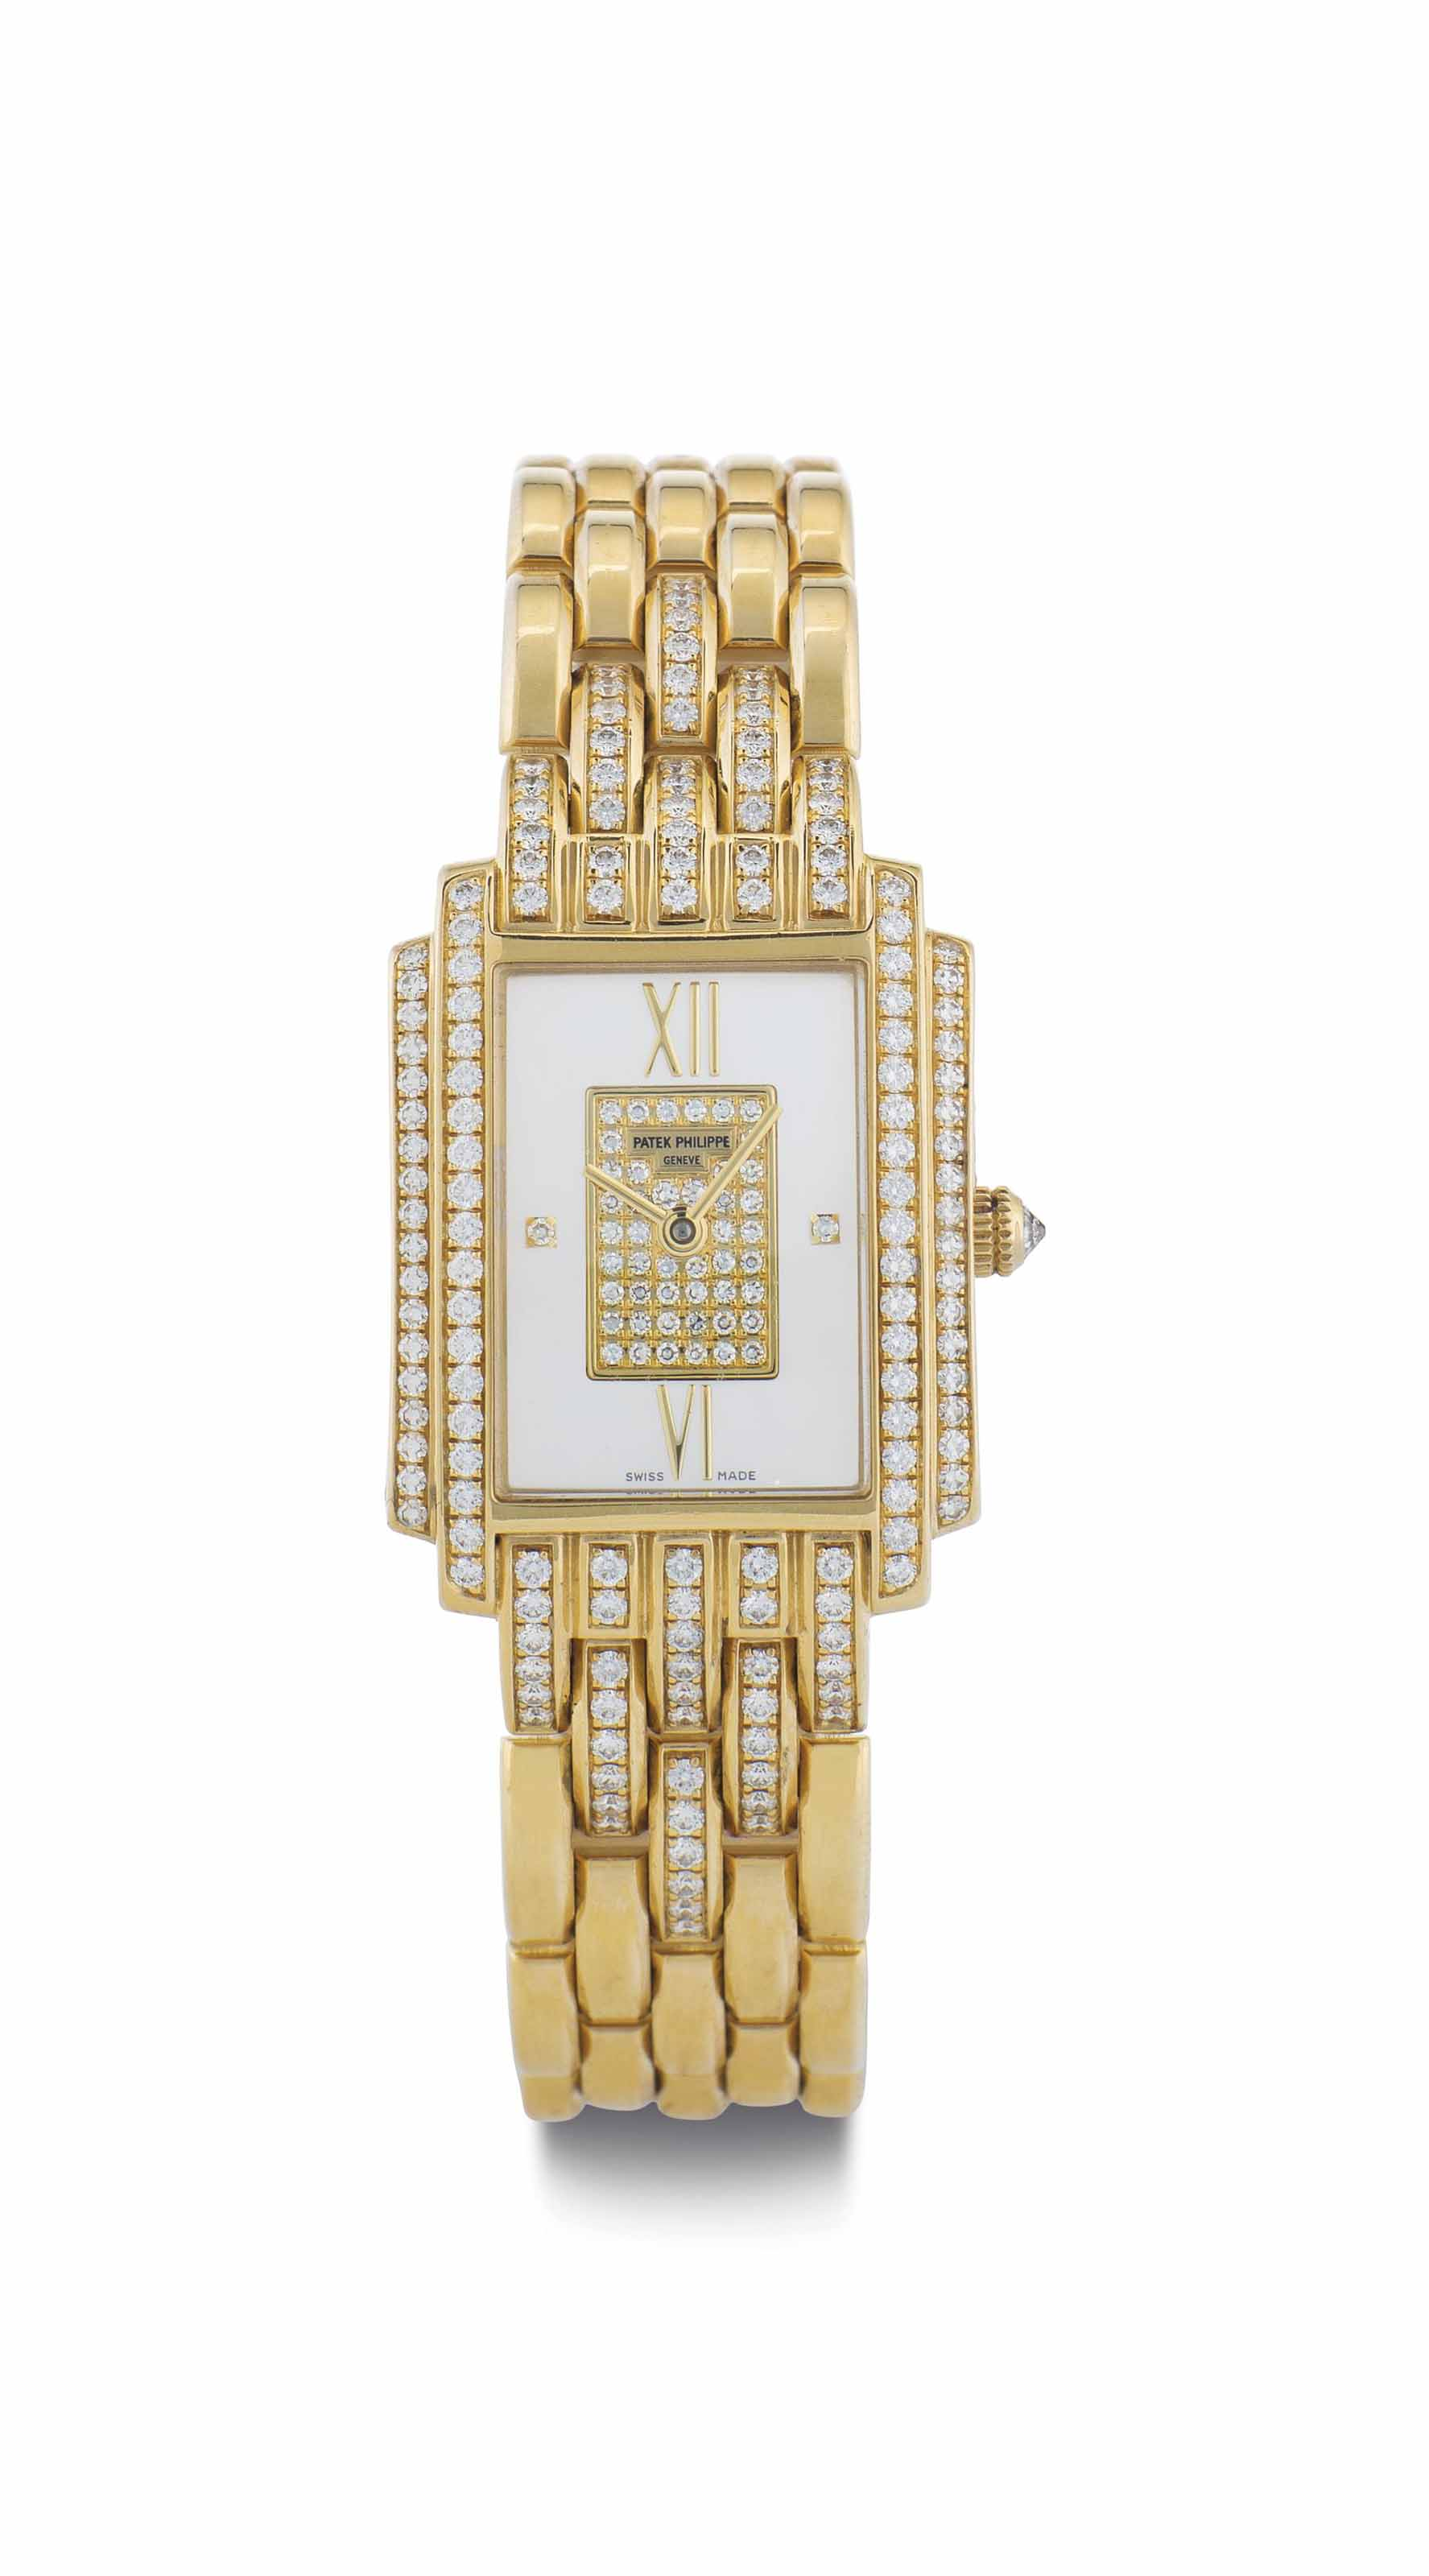 Patek Philippe. A Lady's 18k Gold and Diamond-Set Wristwatch with Mother-of-Pearl Dial and Bracelet